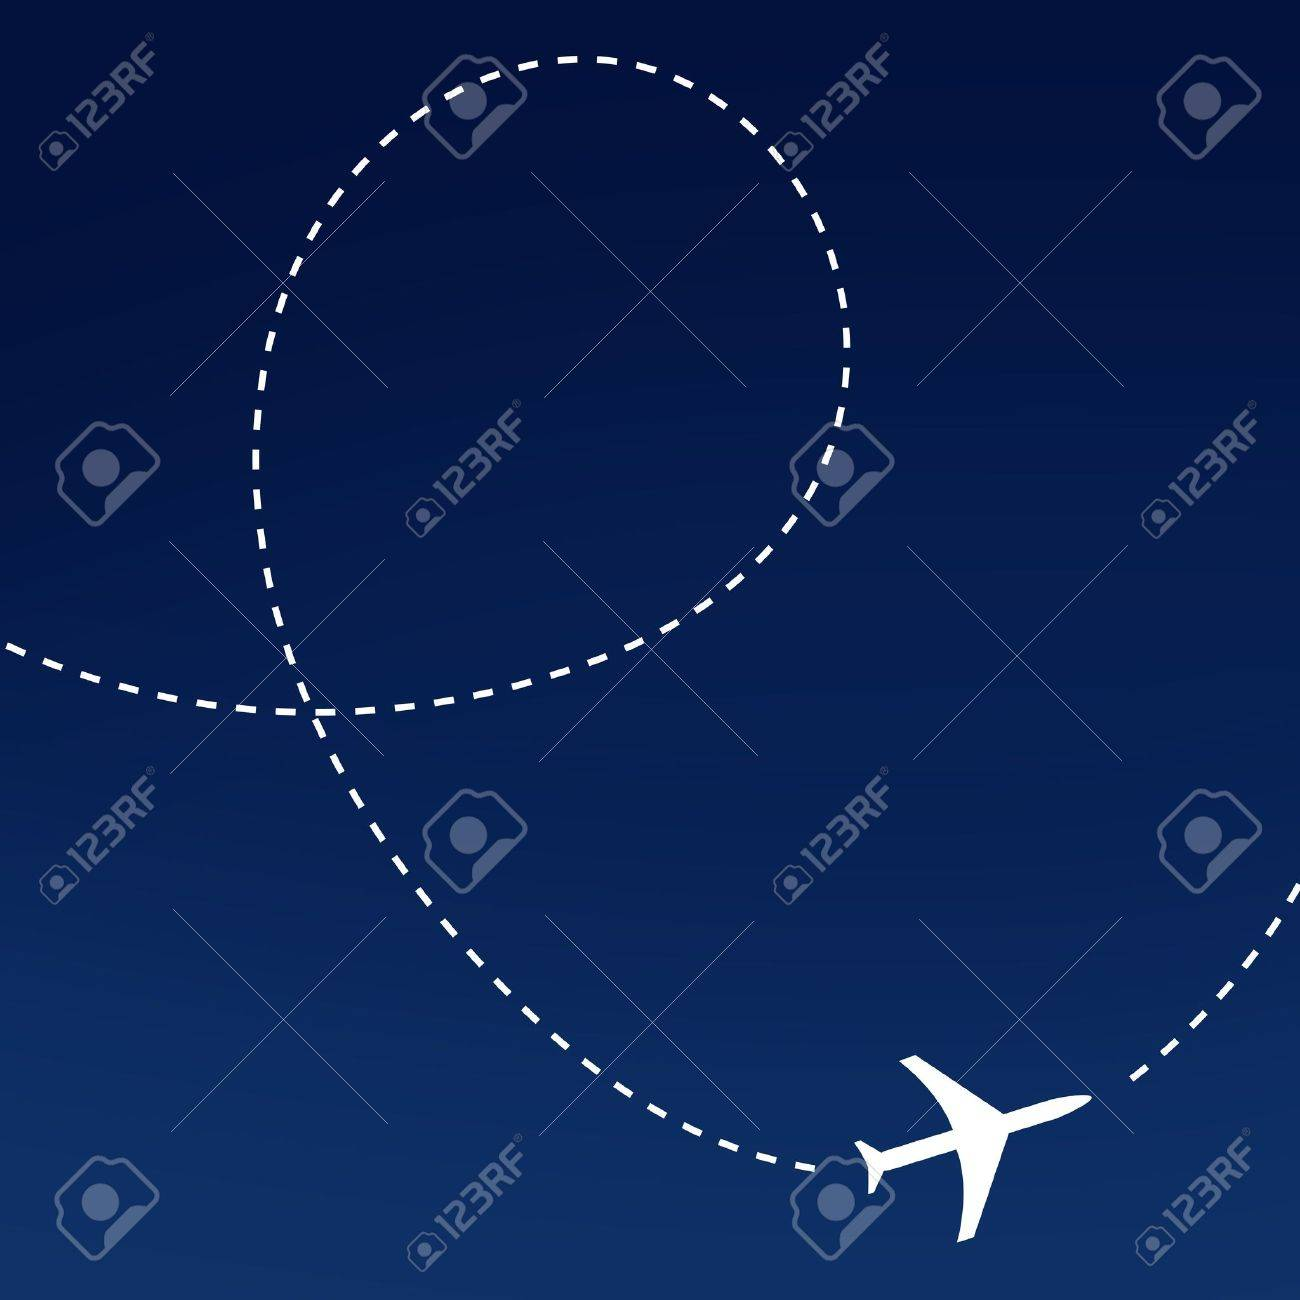 Airplane route Stock Photo - 8534942